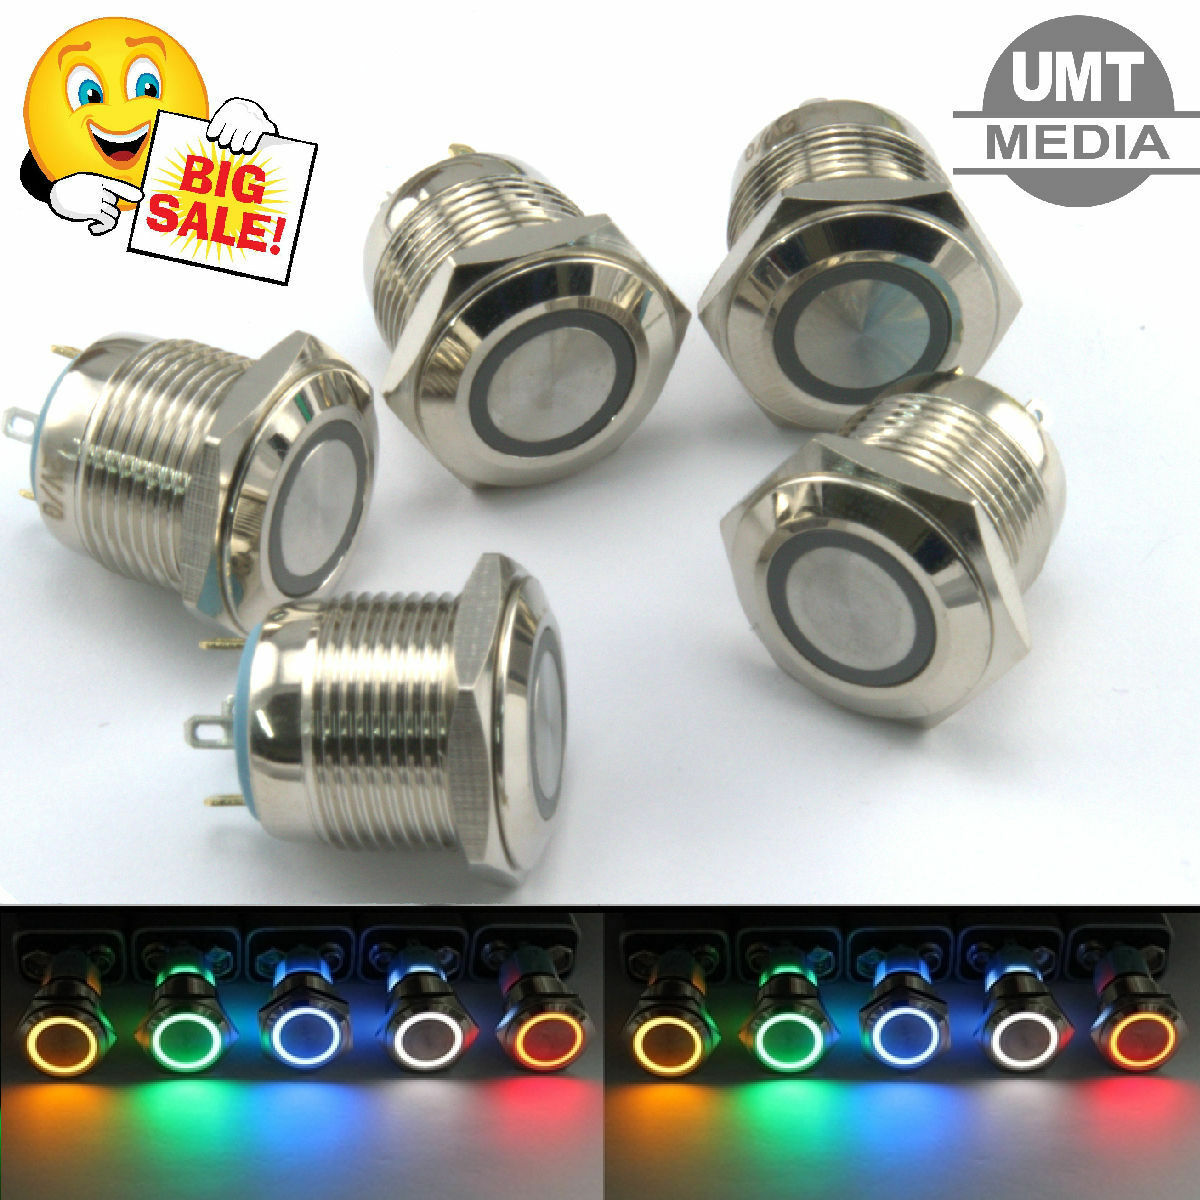 12V/24V Momentary Push Button Switch - Round Aluminium Metal 3A ...